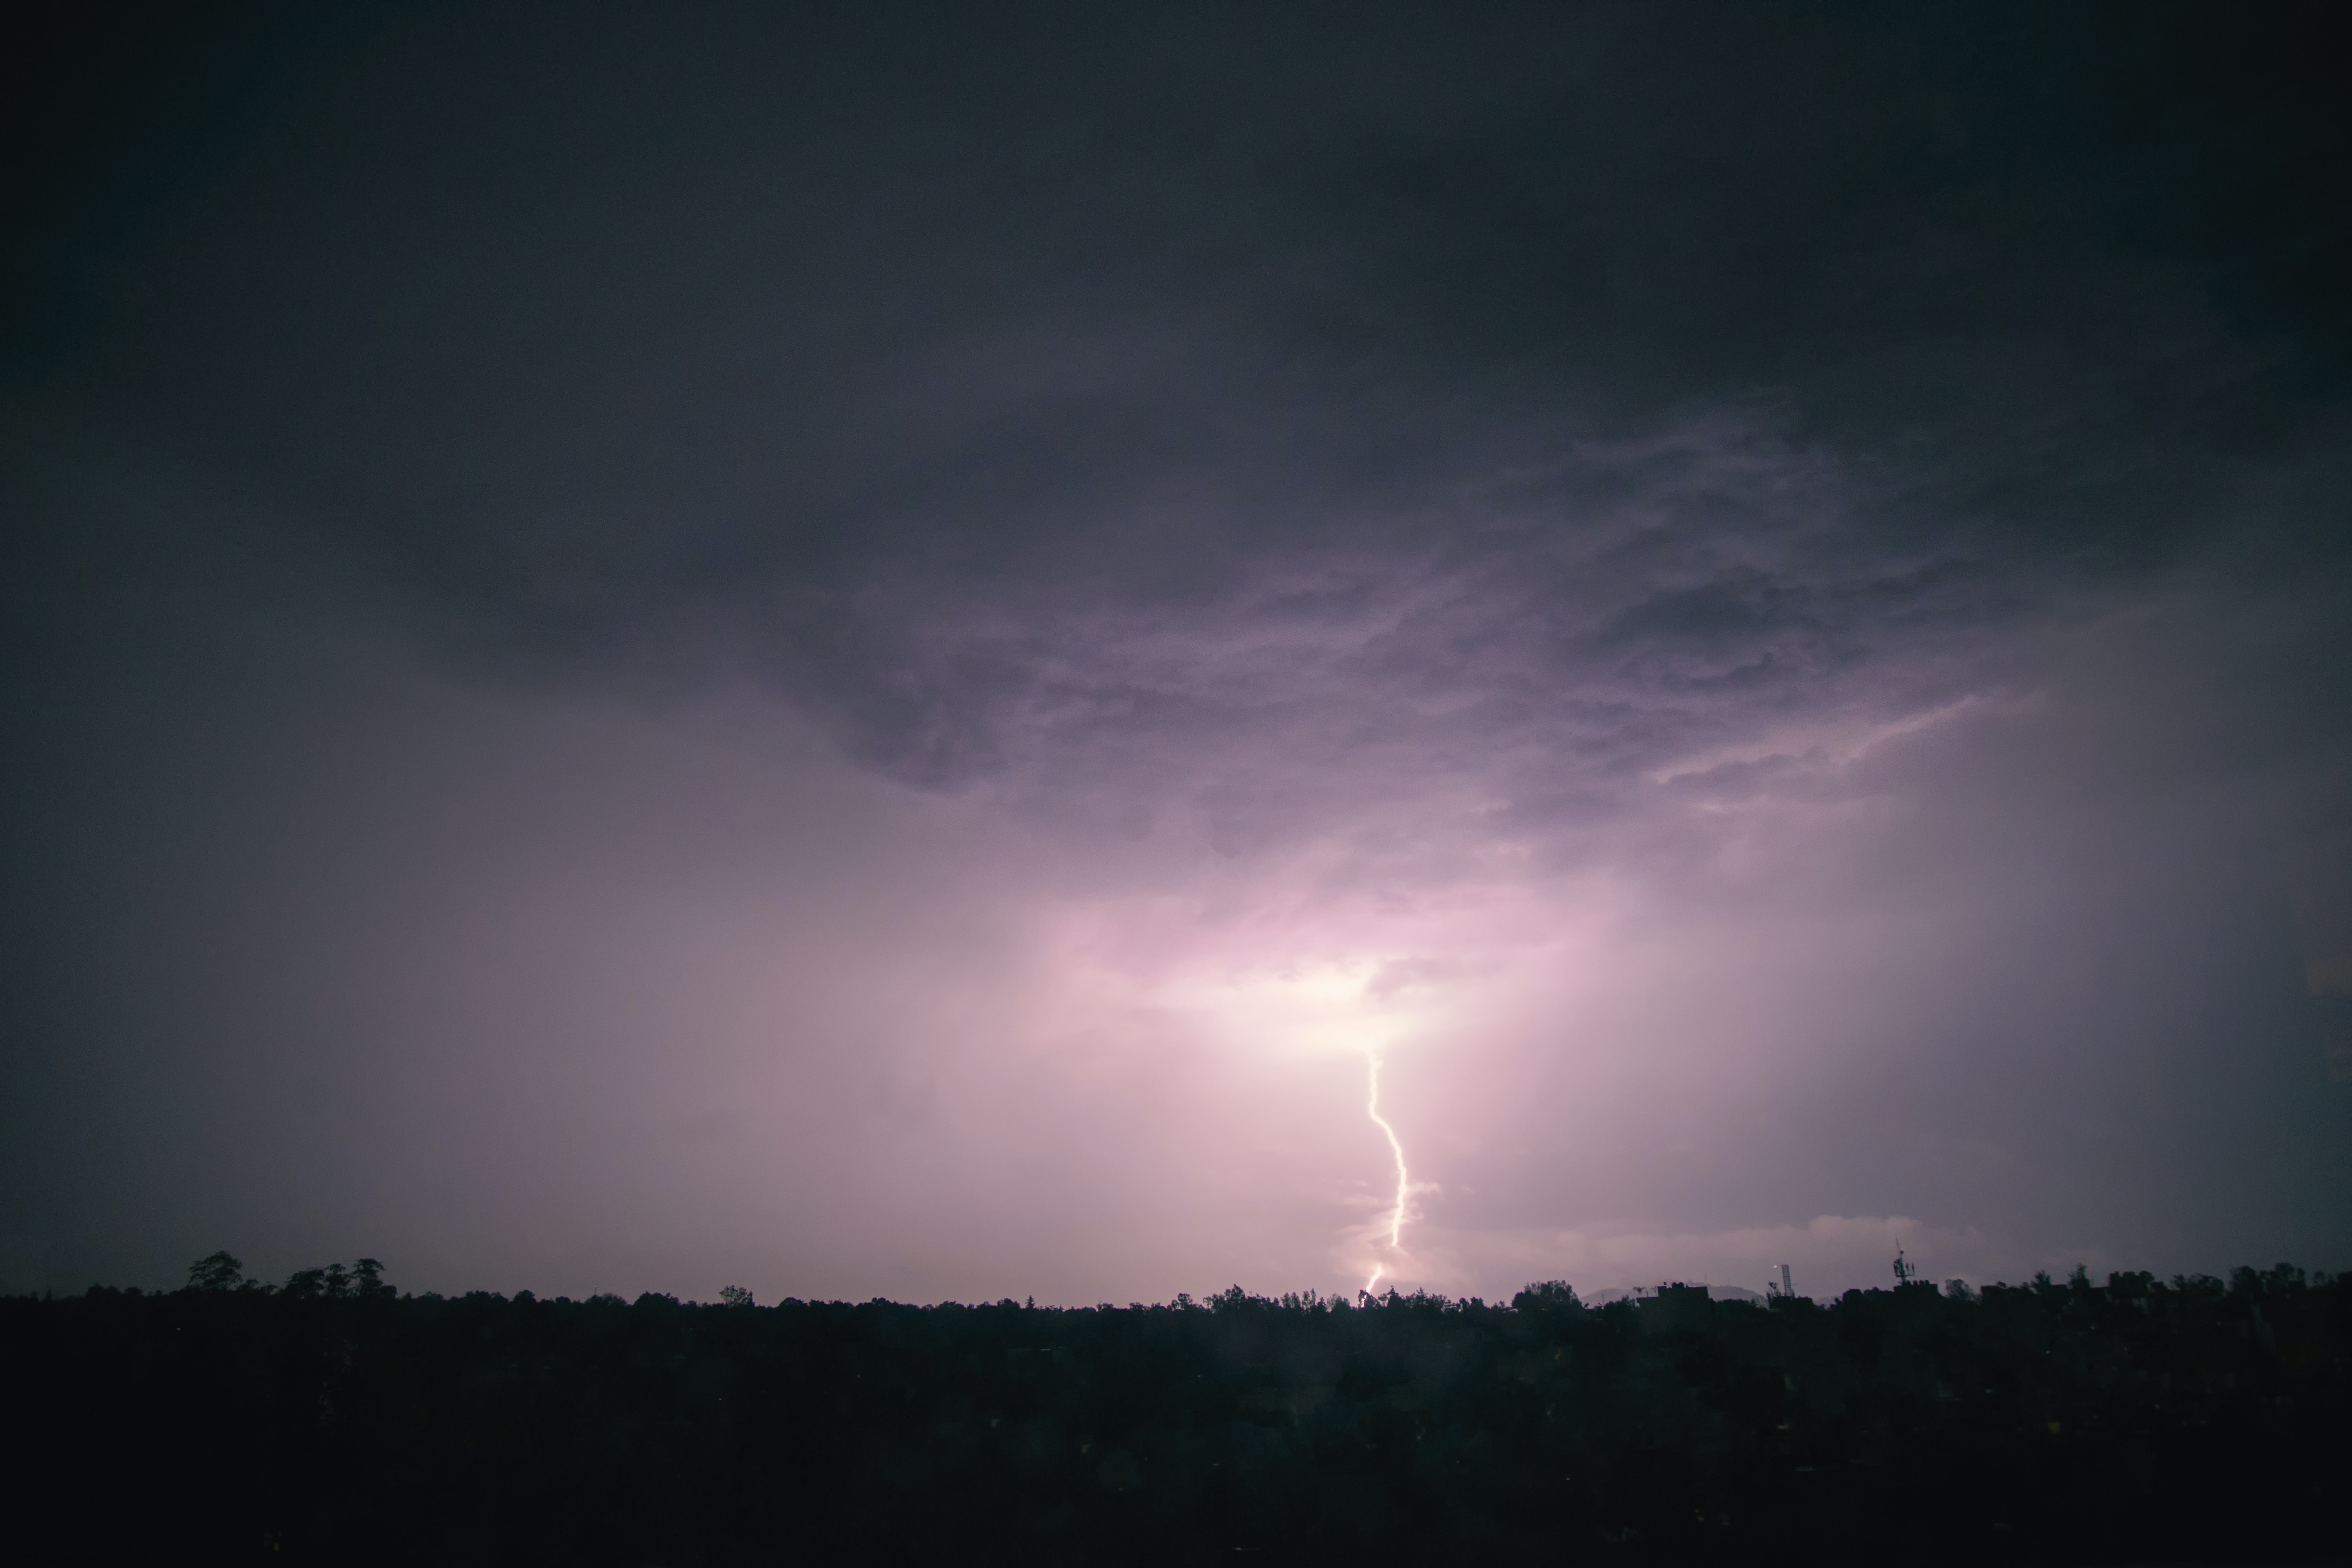 silhouette of trees under gray clouds with thunder at nighttime